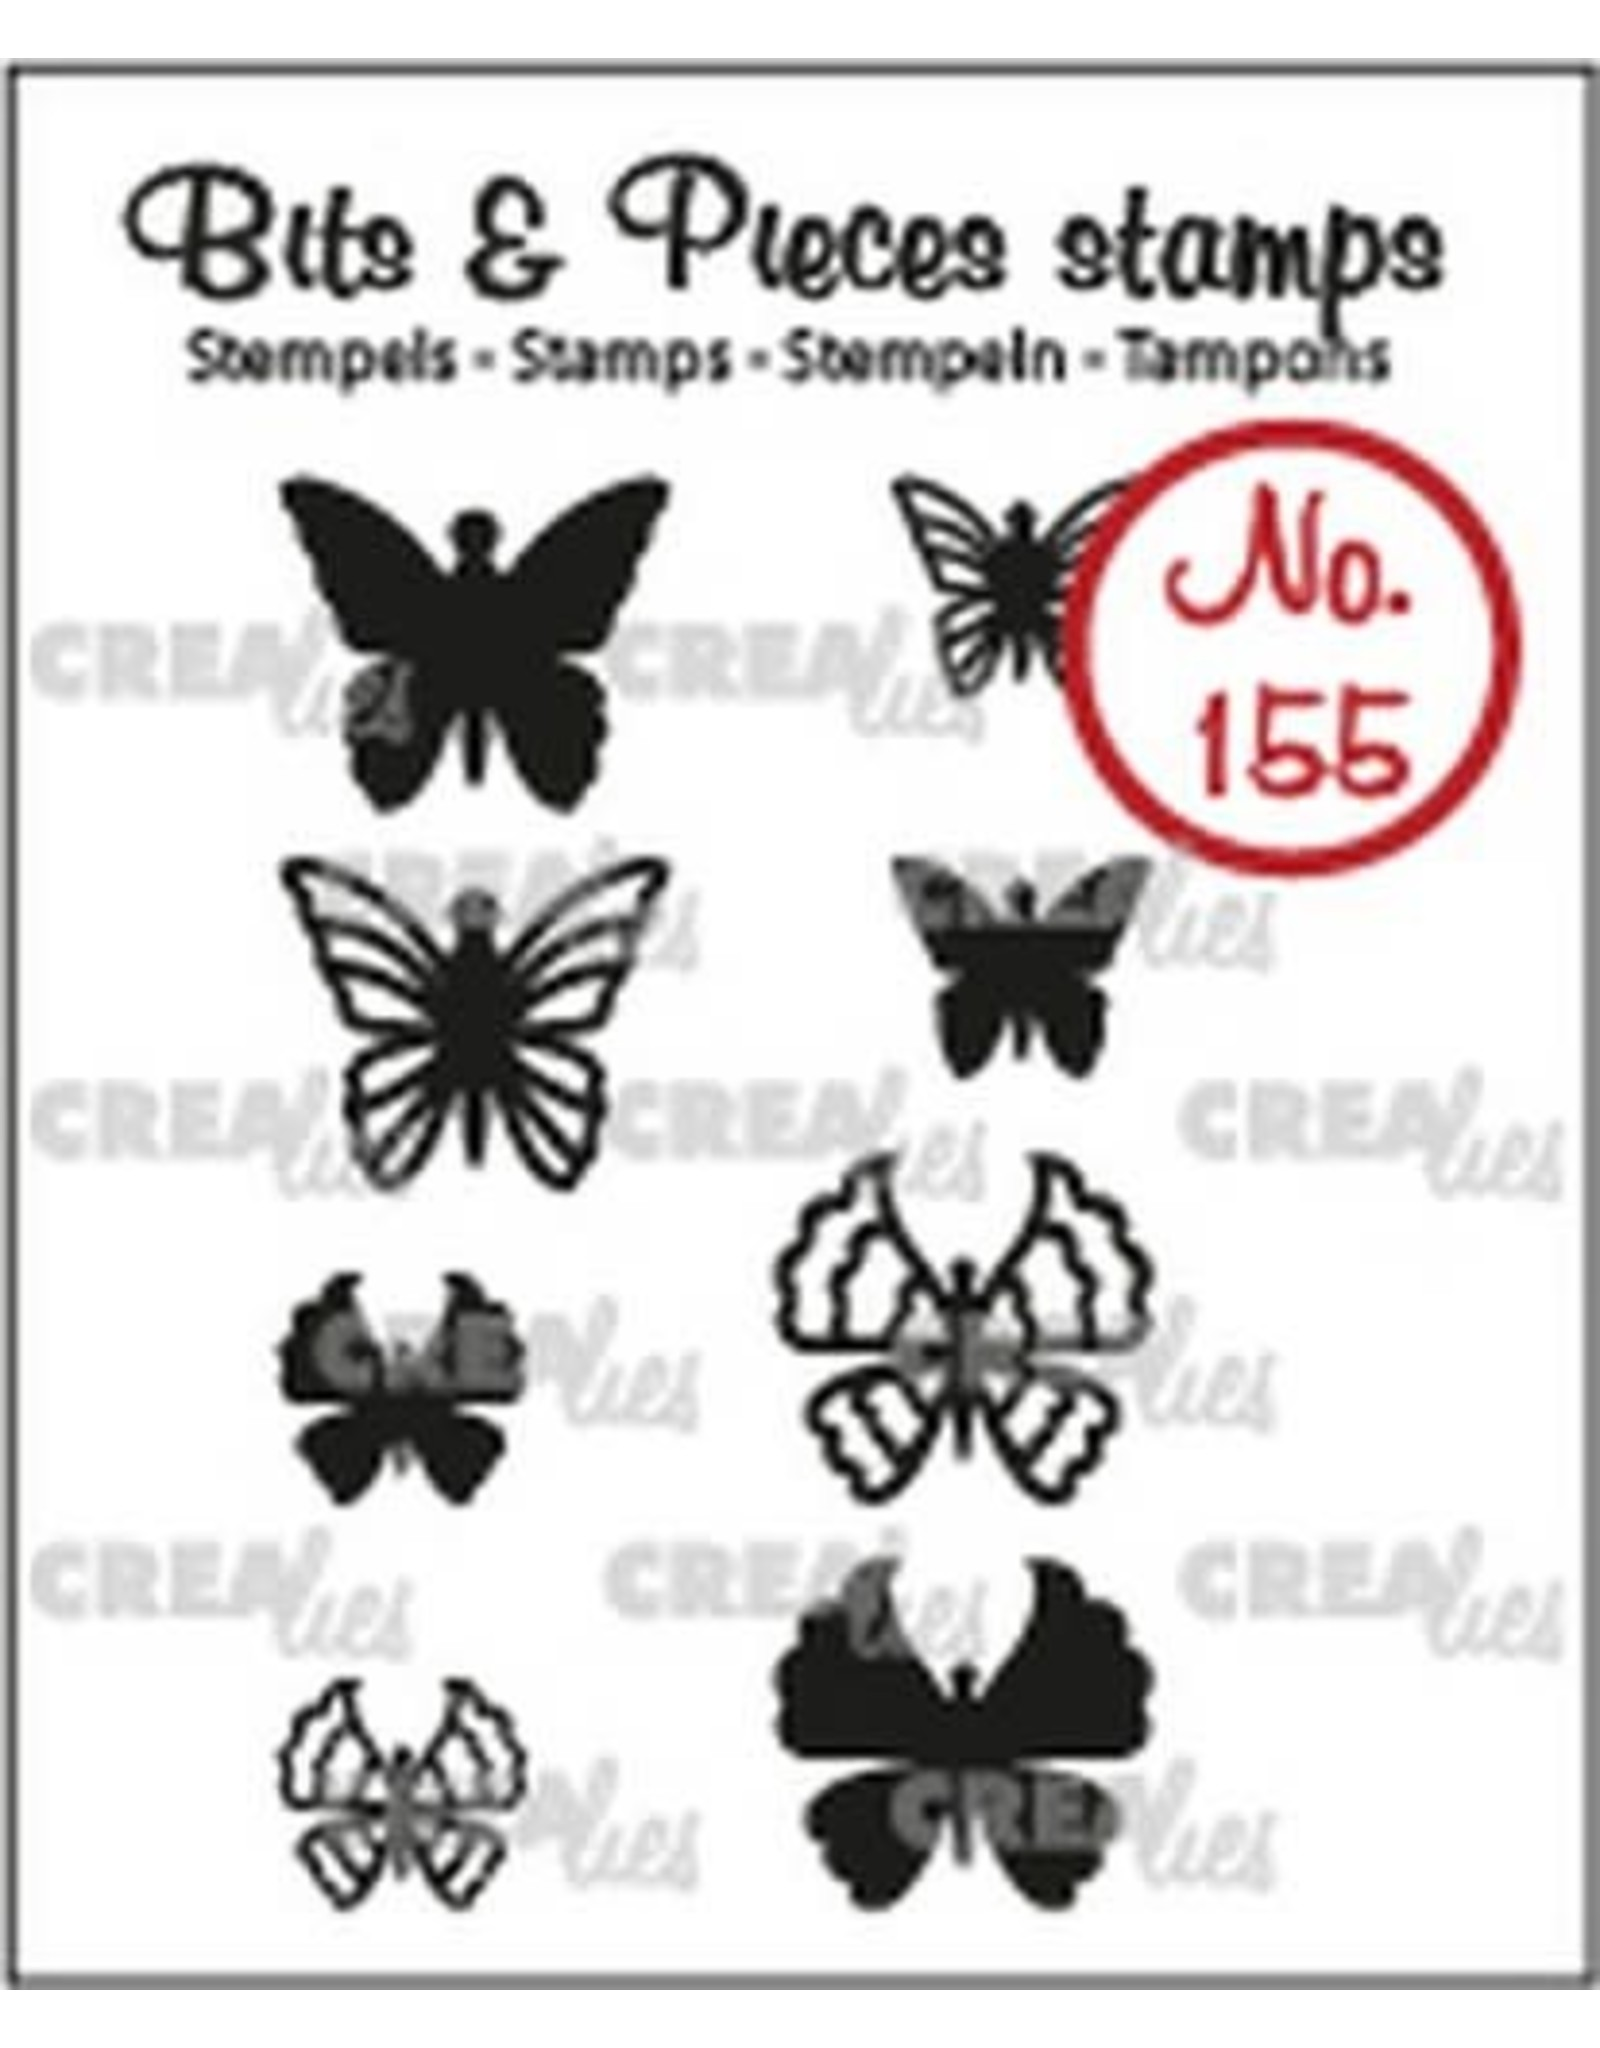 Crealies Crealies Clearstamp Bits & Pieces 8x Mini Vlinders 5 + 6 CLBP155 max. 13x12 mm